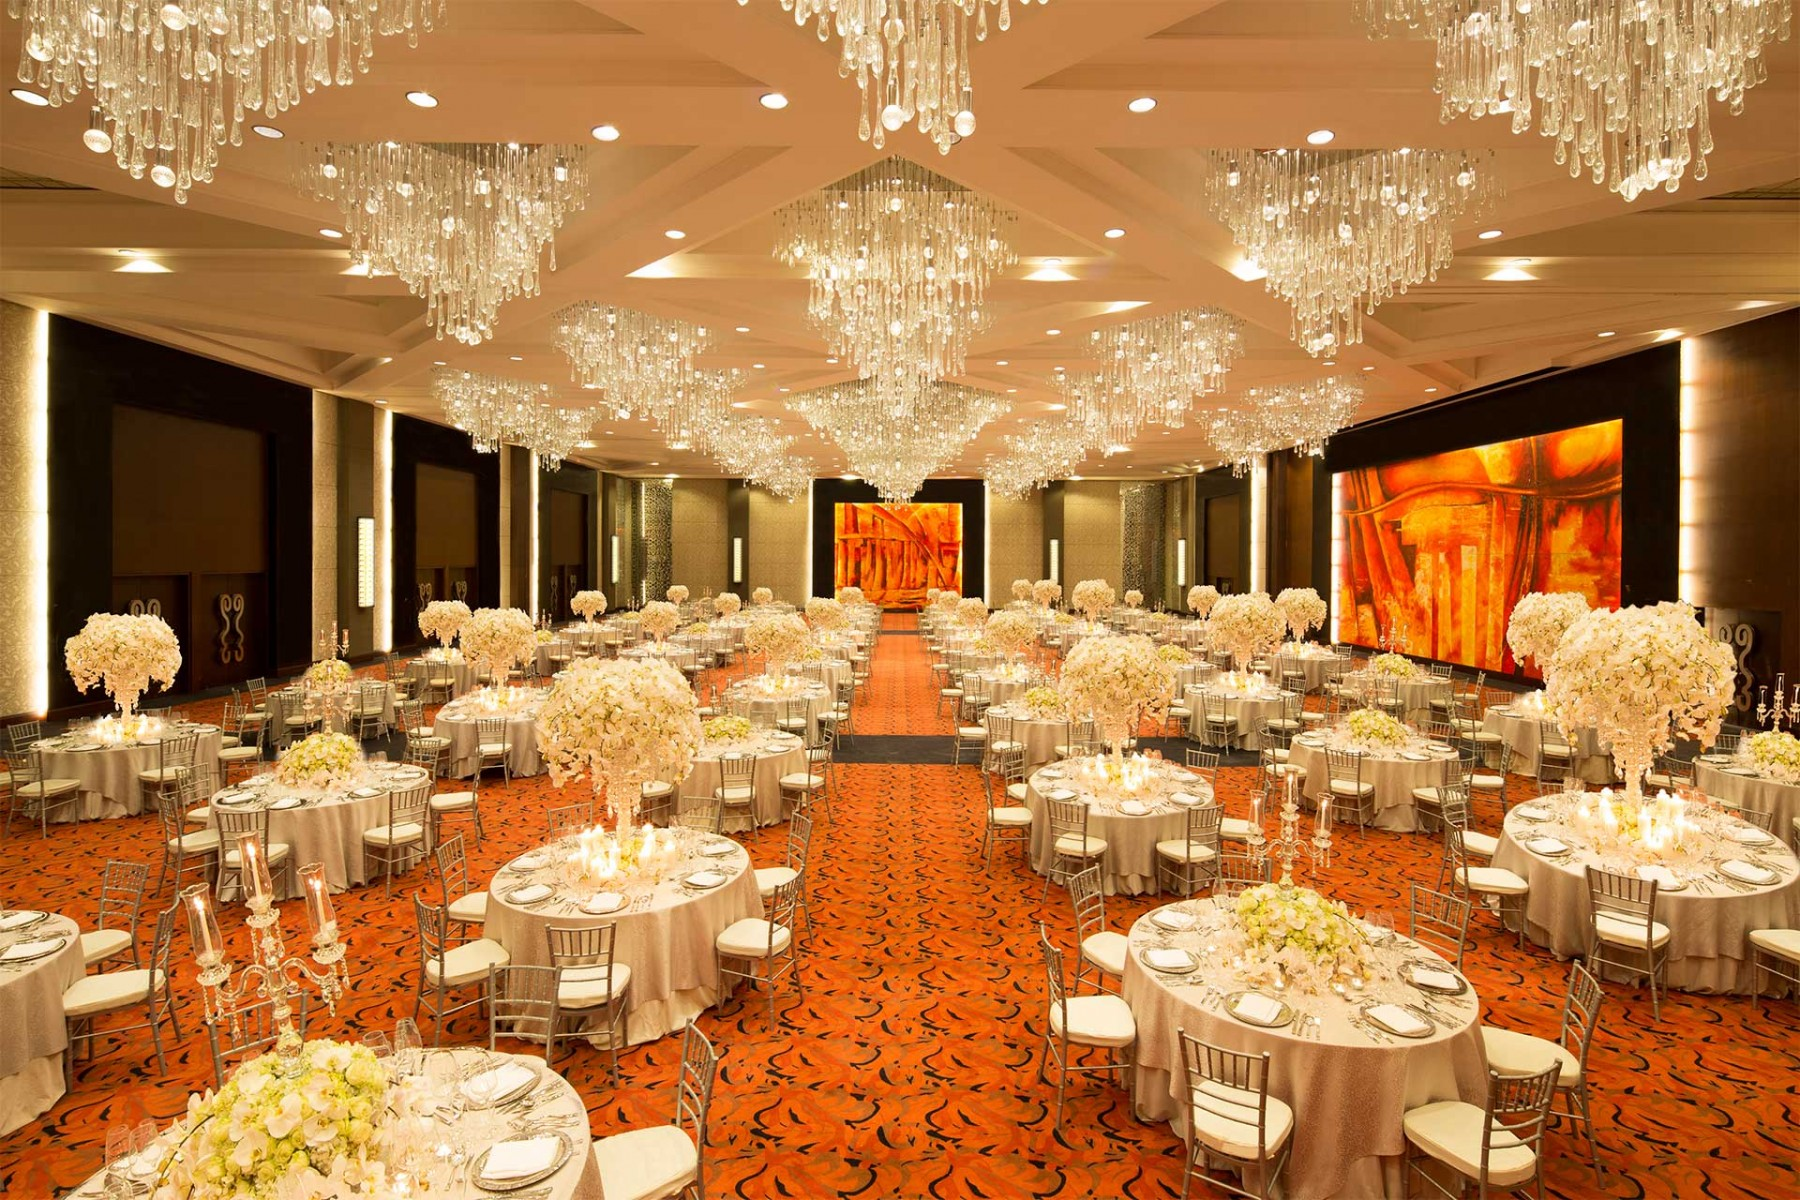 sofitel-unveils-the-new-look-of-the-iconic-grand-plaza-ballroom